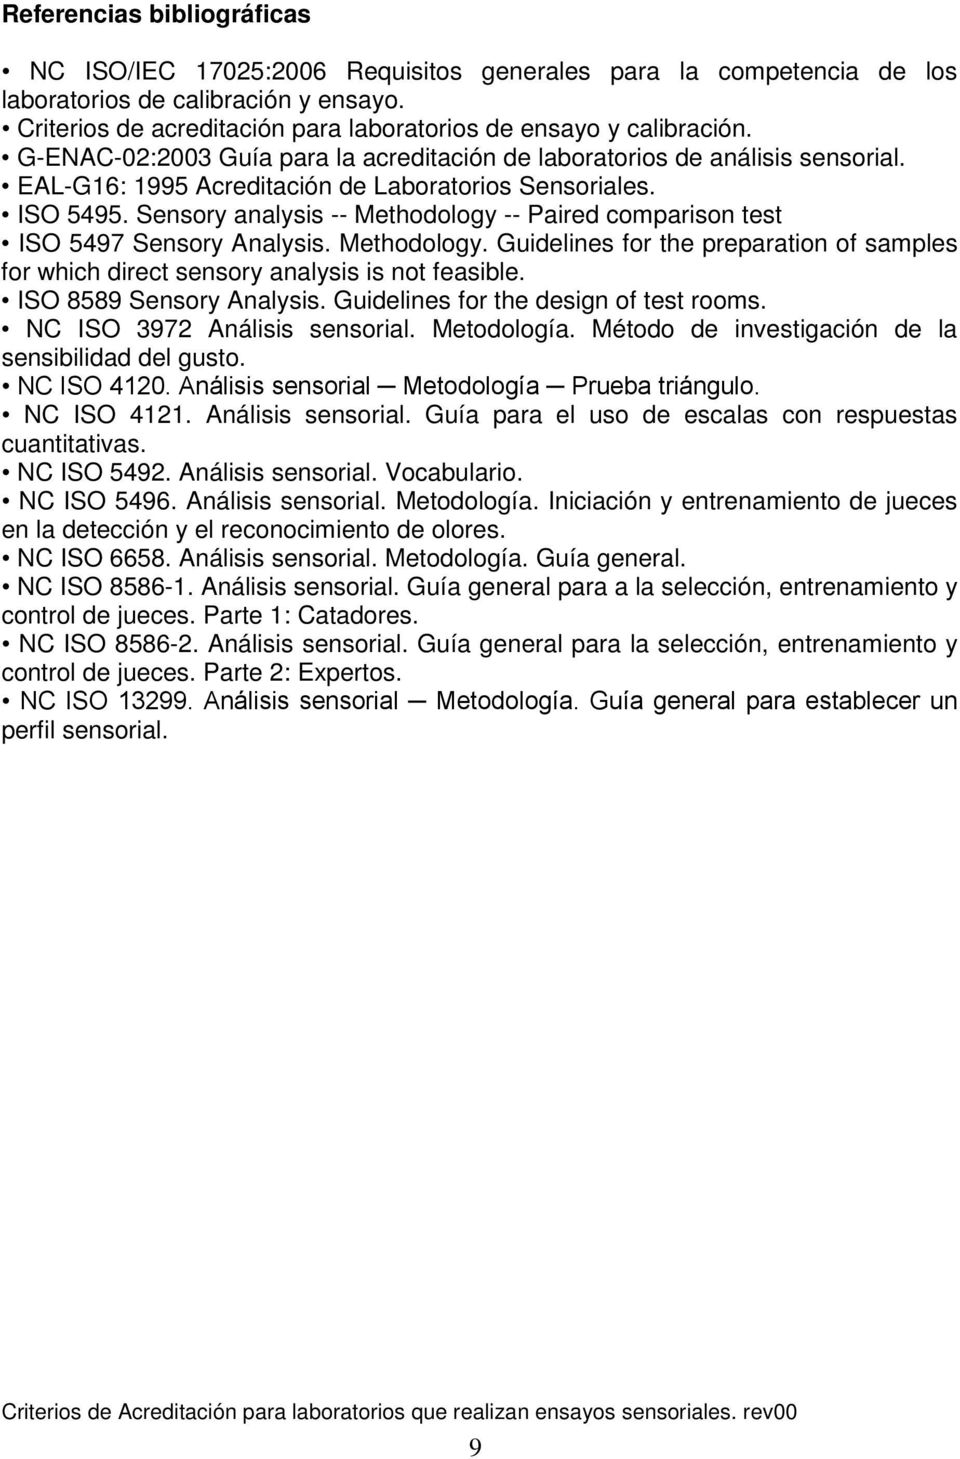 EAL-G16: 1995 Acreditación de Laboratorios Sensoriales. ISO 5495. Sensory analysis -- Methodology -- Paired comparison test ISO 5497 Sensory Analysis. Methodology. Guidelines for the preparation of samples for which direct sensory analysis is not feasible.